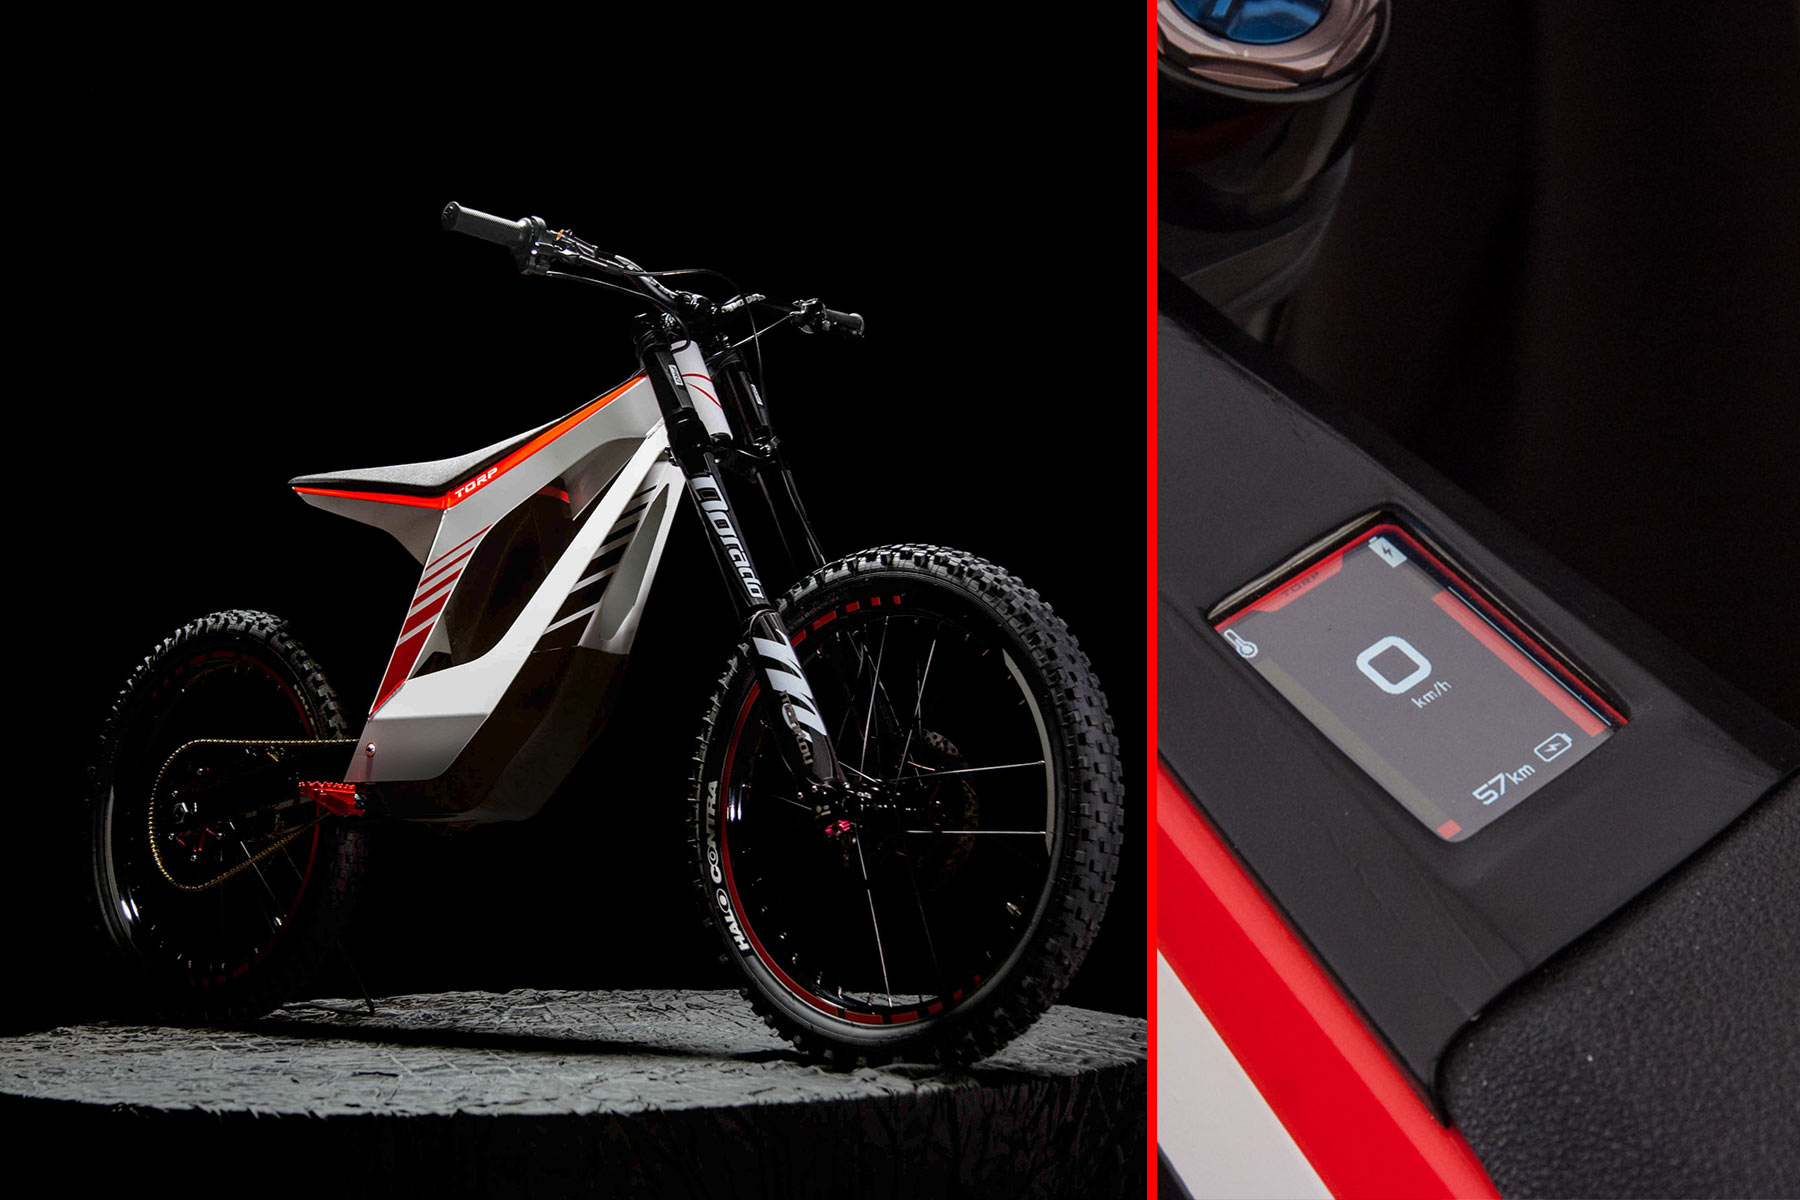 TORP MOTOR's new Lightweight Electric Dirtbike